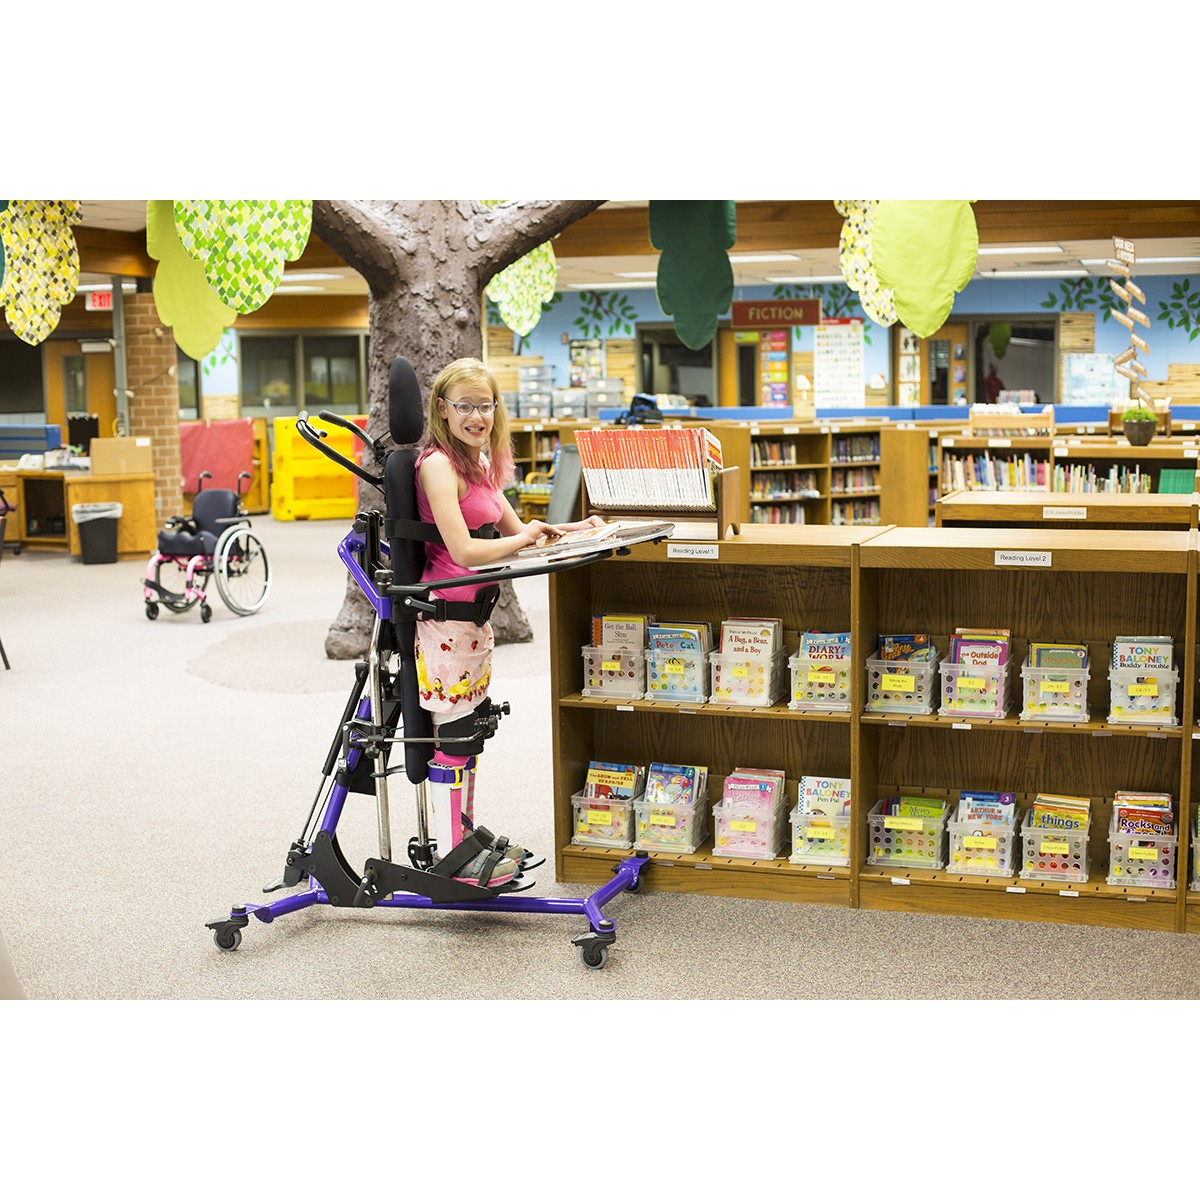 Girl standing in a Purple EasyStand Zing MPS TT Size 2 Pow'r Up Lift in a Library